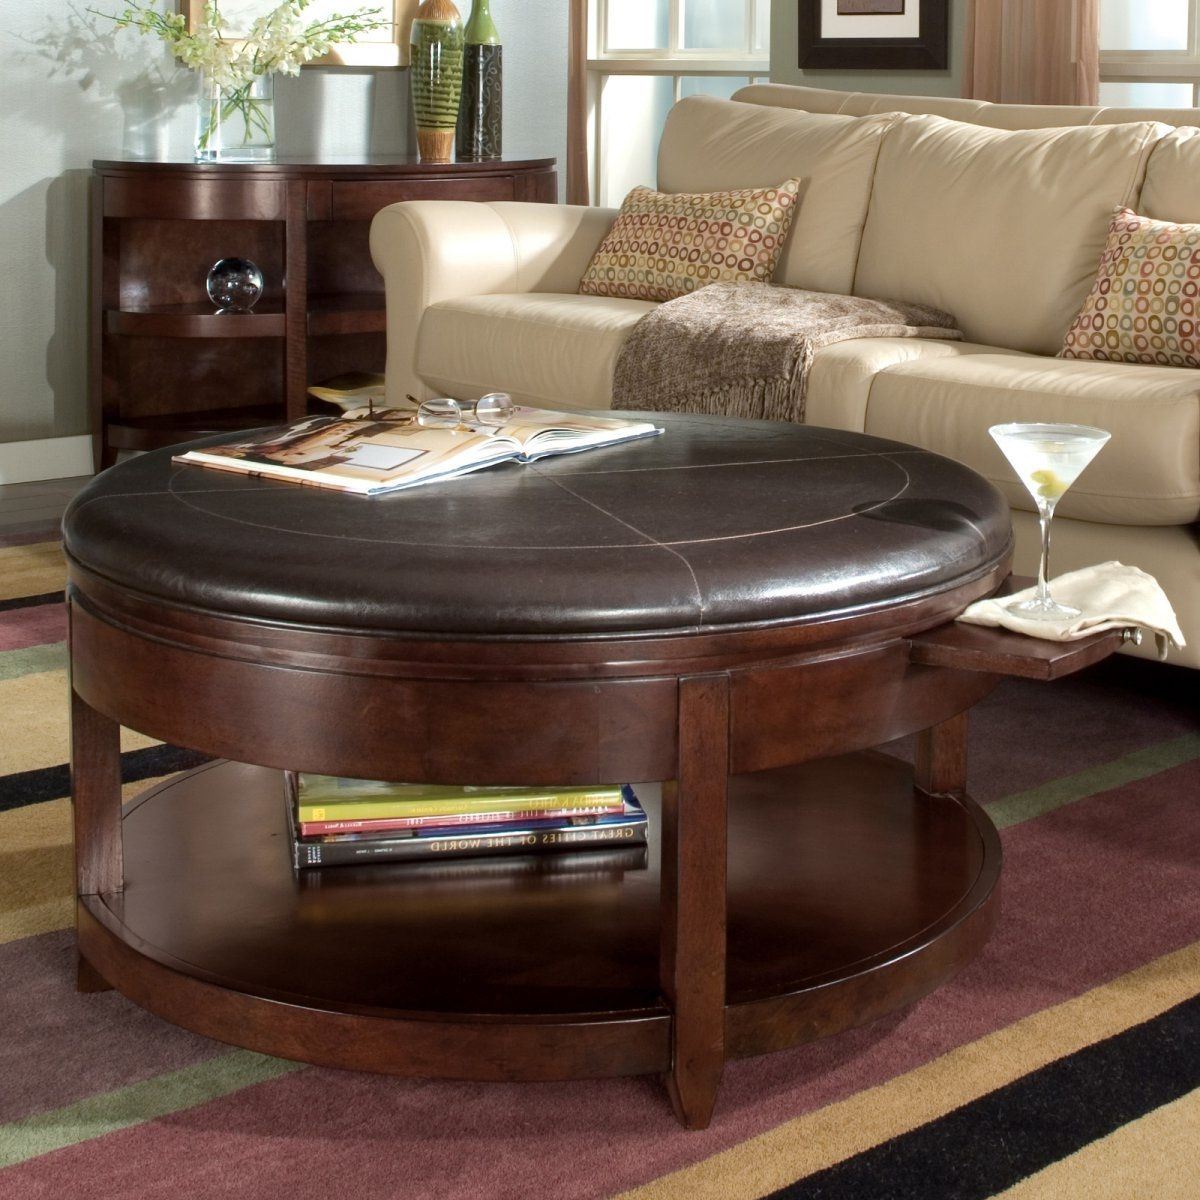 Terrific Leather Ottoman Coffee Table | Furniture | Pinterest